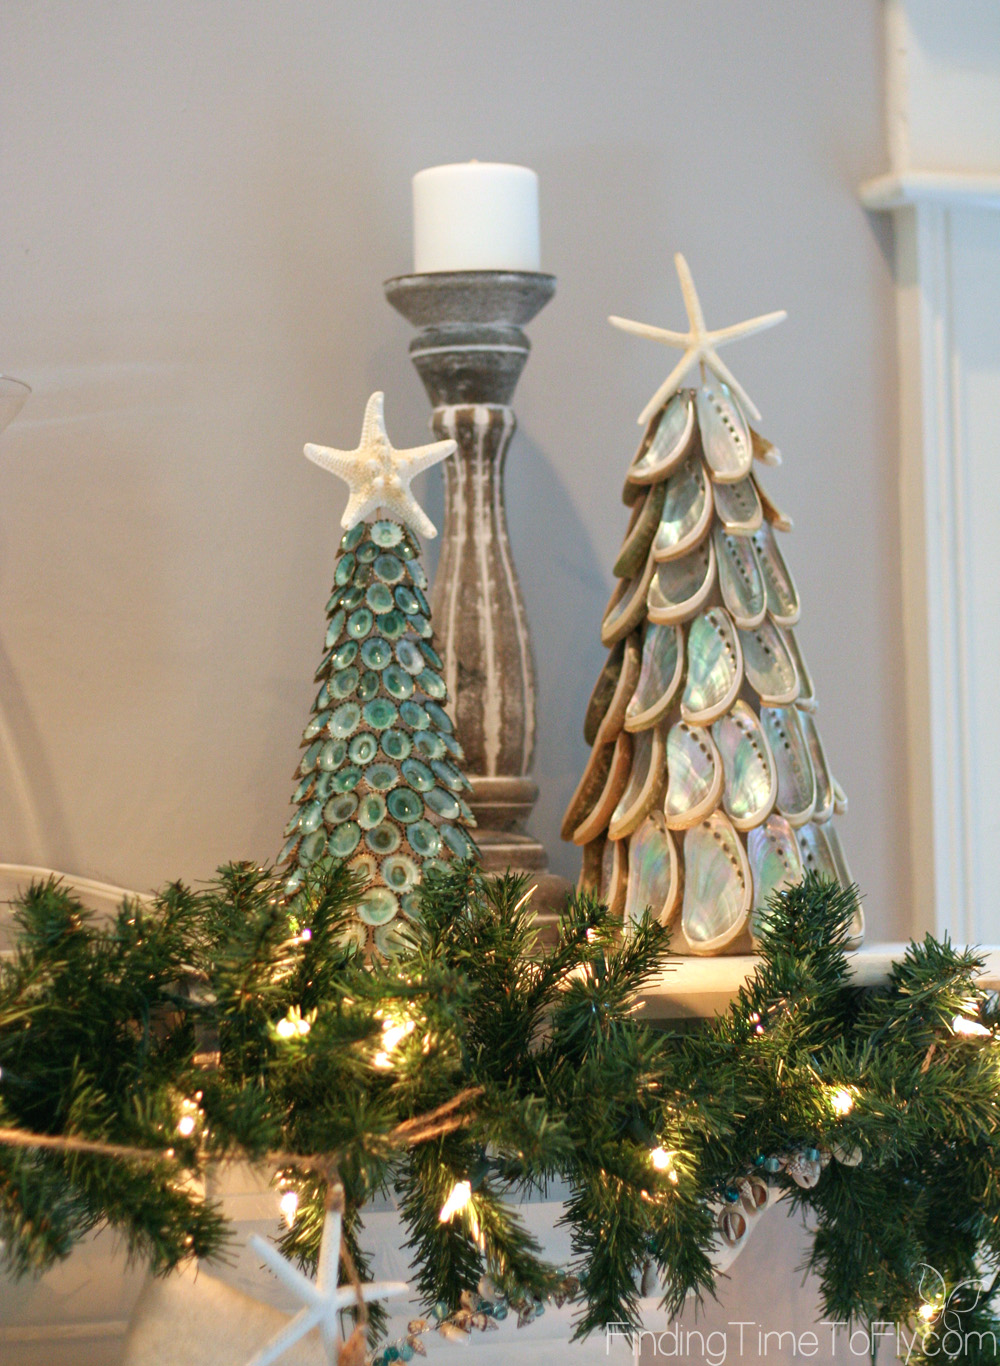 Coastal Christmas Keeping Room with elegant fireplace mantle, seashell Christmas trees, starfish garland and seashell ornaments